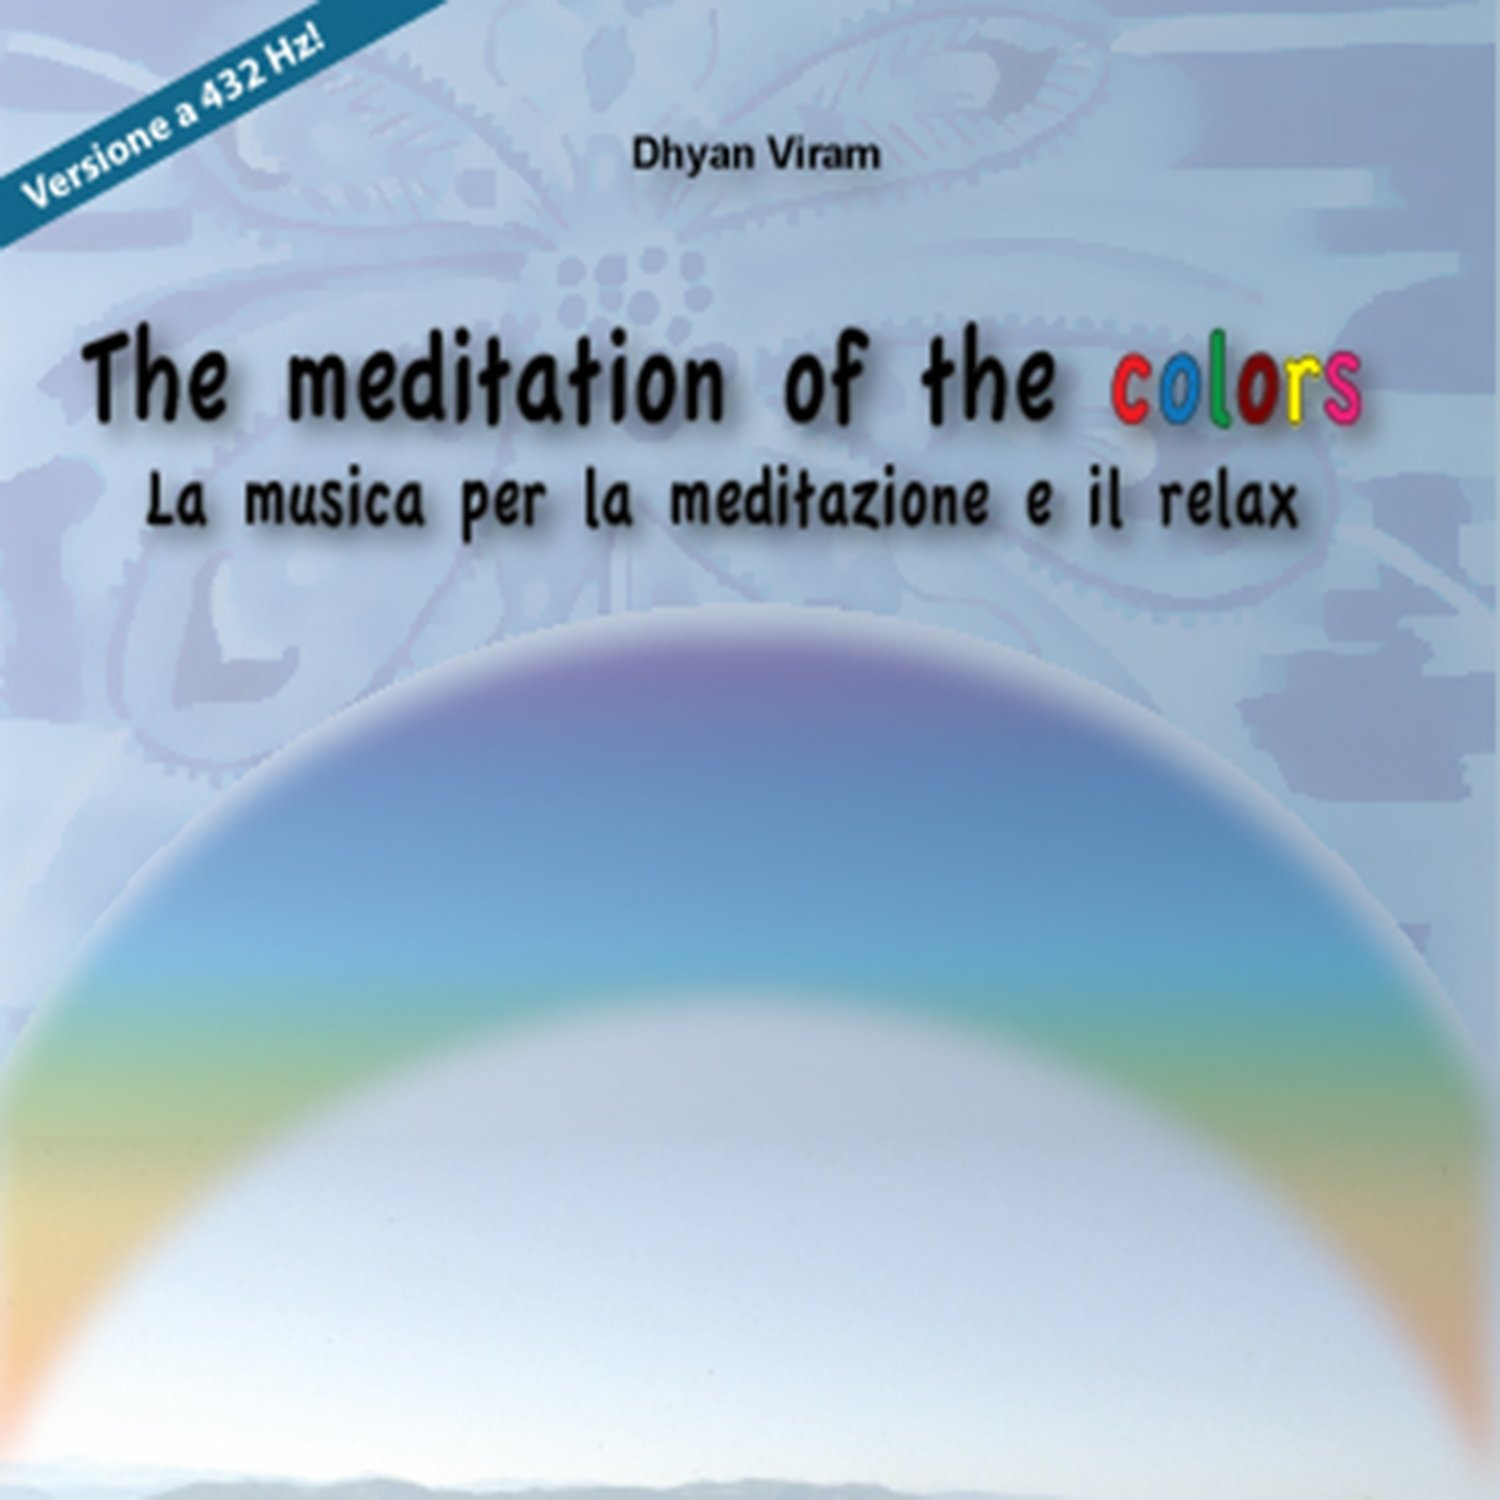 The meditation of the colors